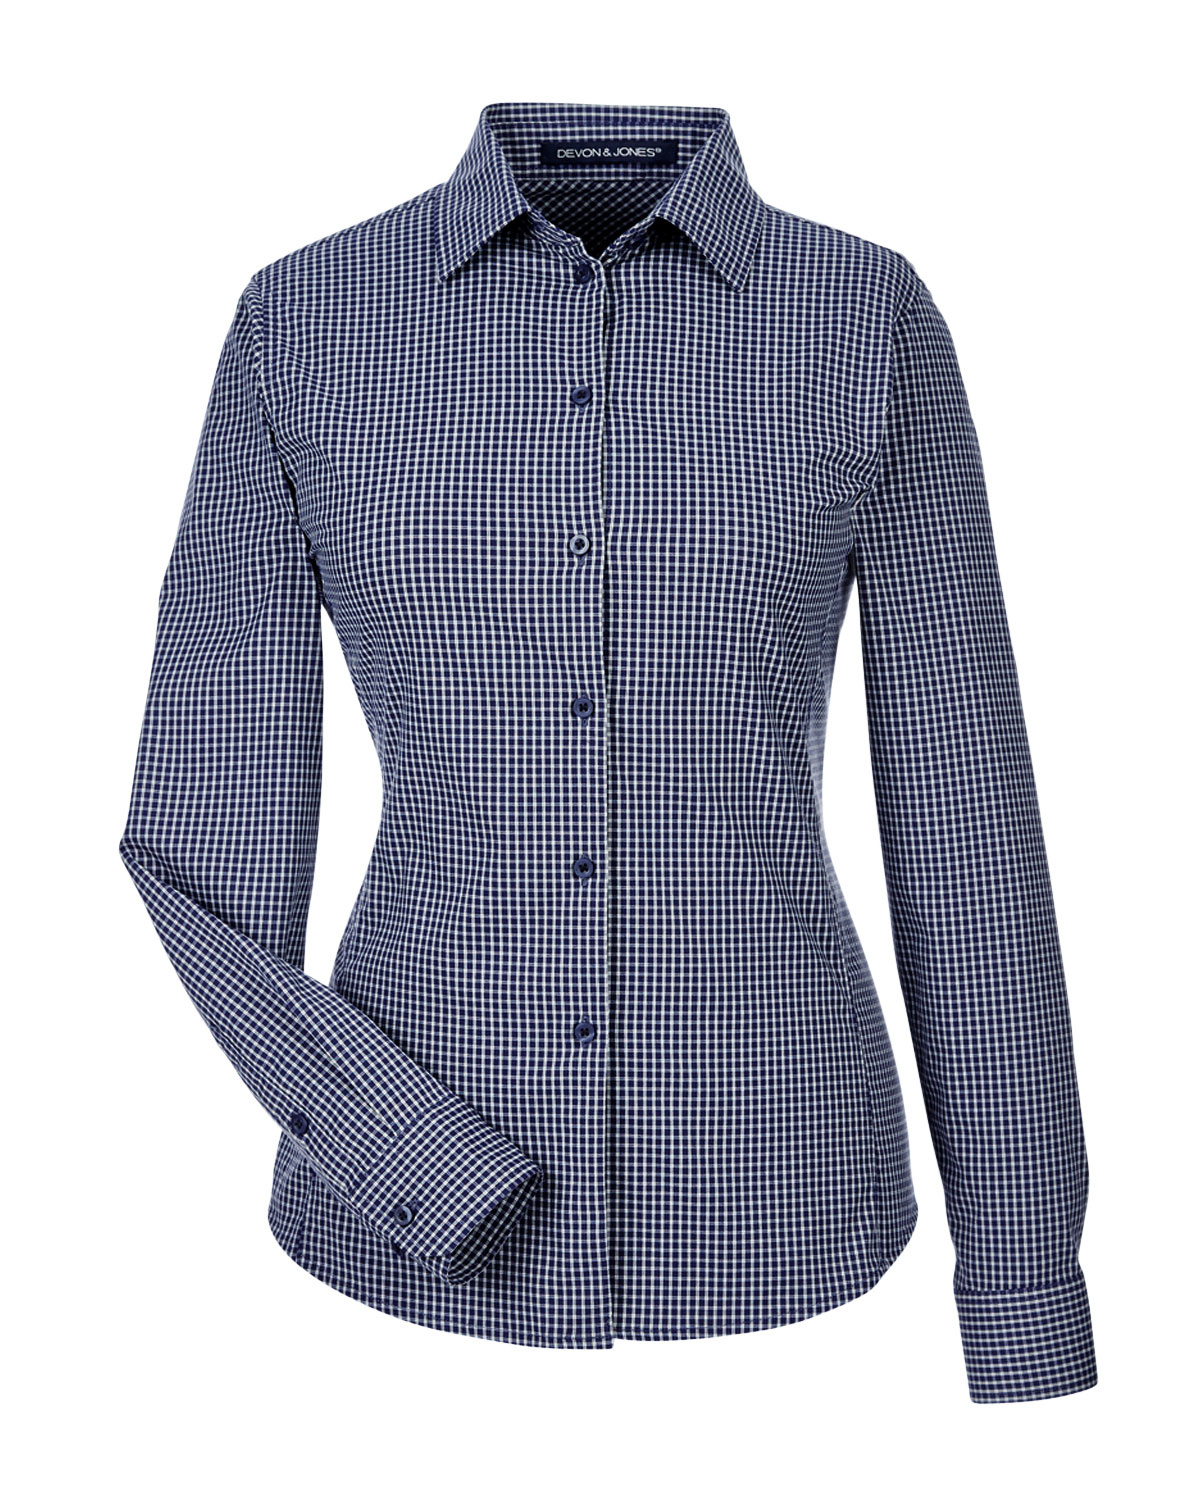 826aa2a9b Ladies CrownLux Performance Tonal Mini Check Shirt - Design Online or Buy  It Blank